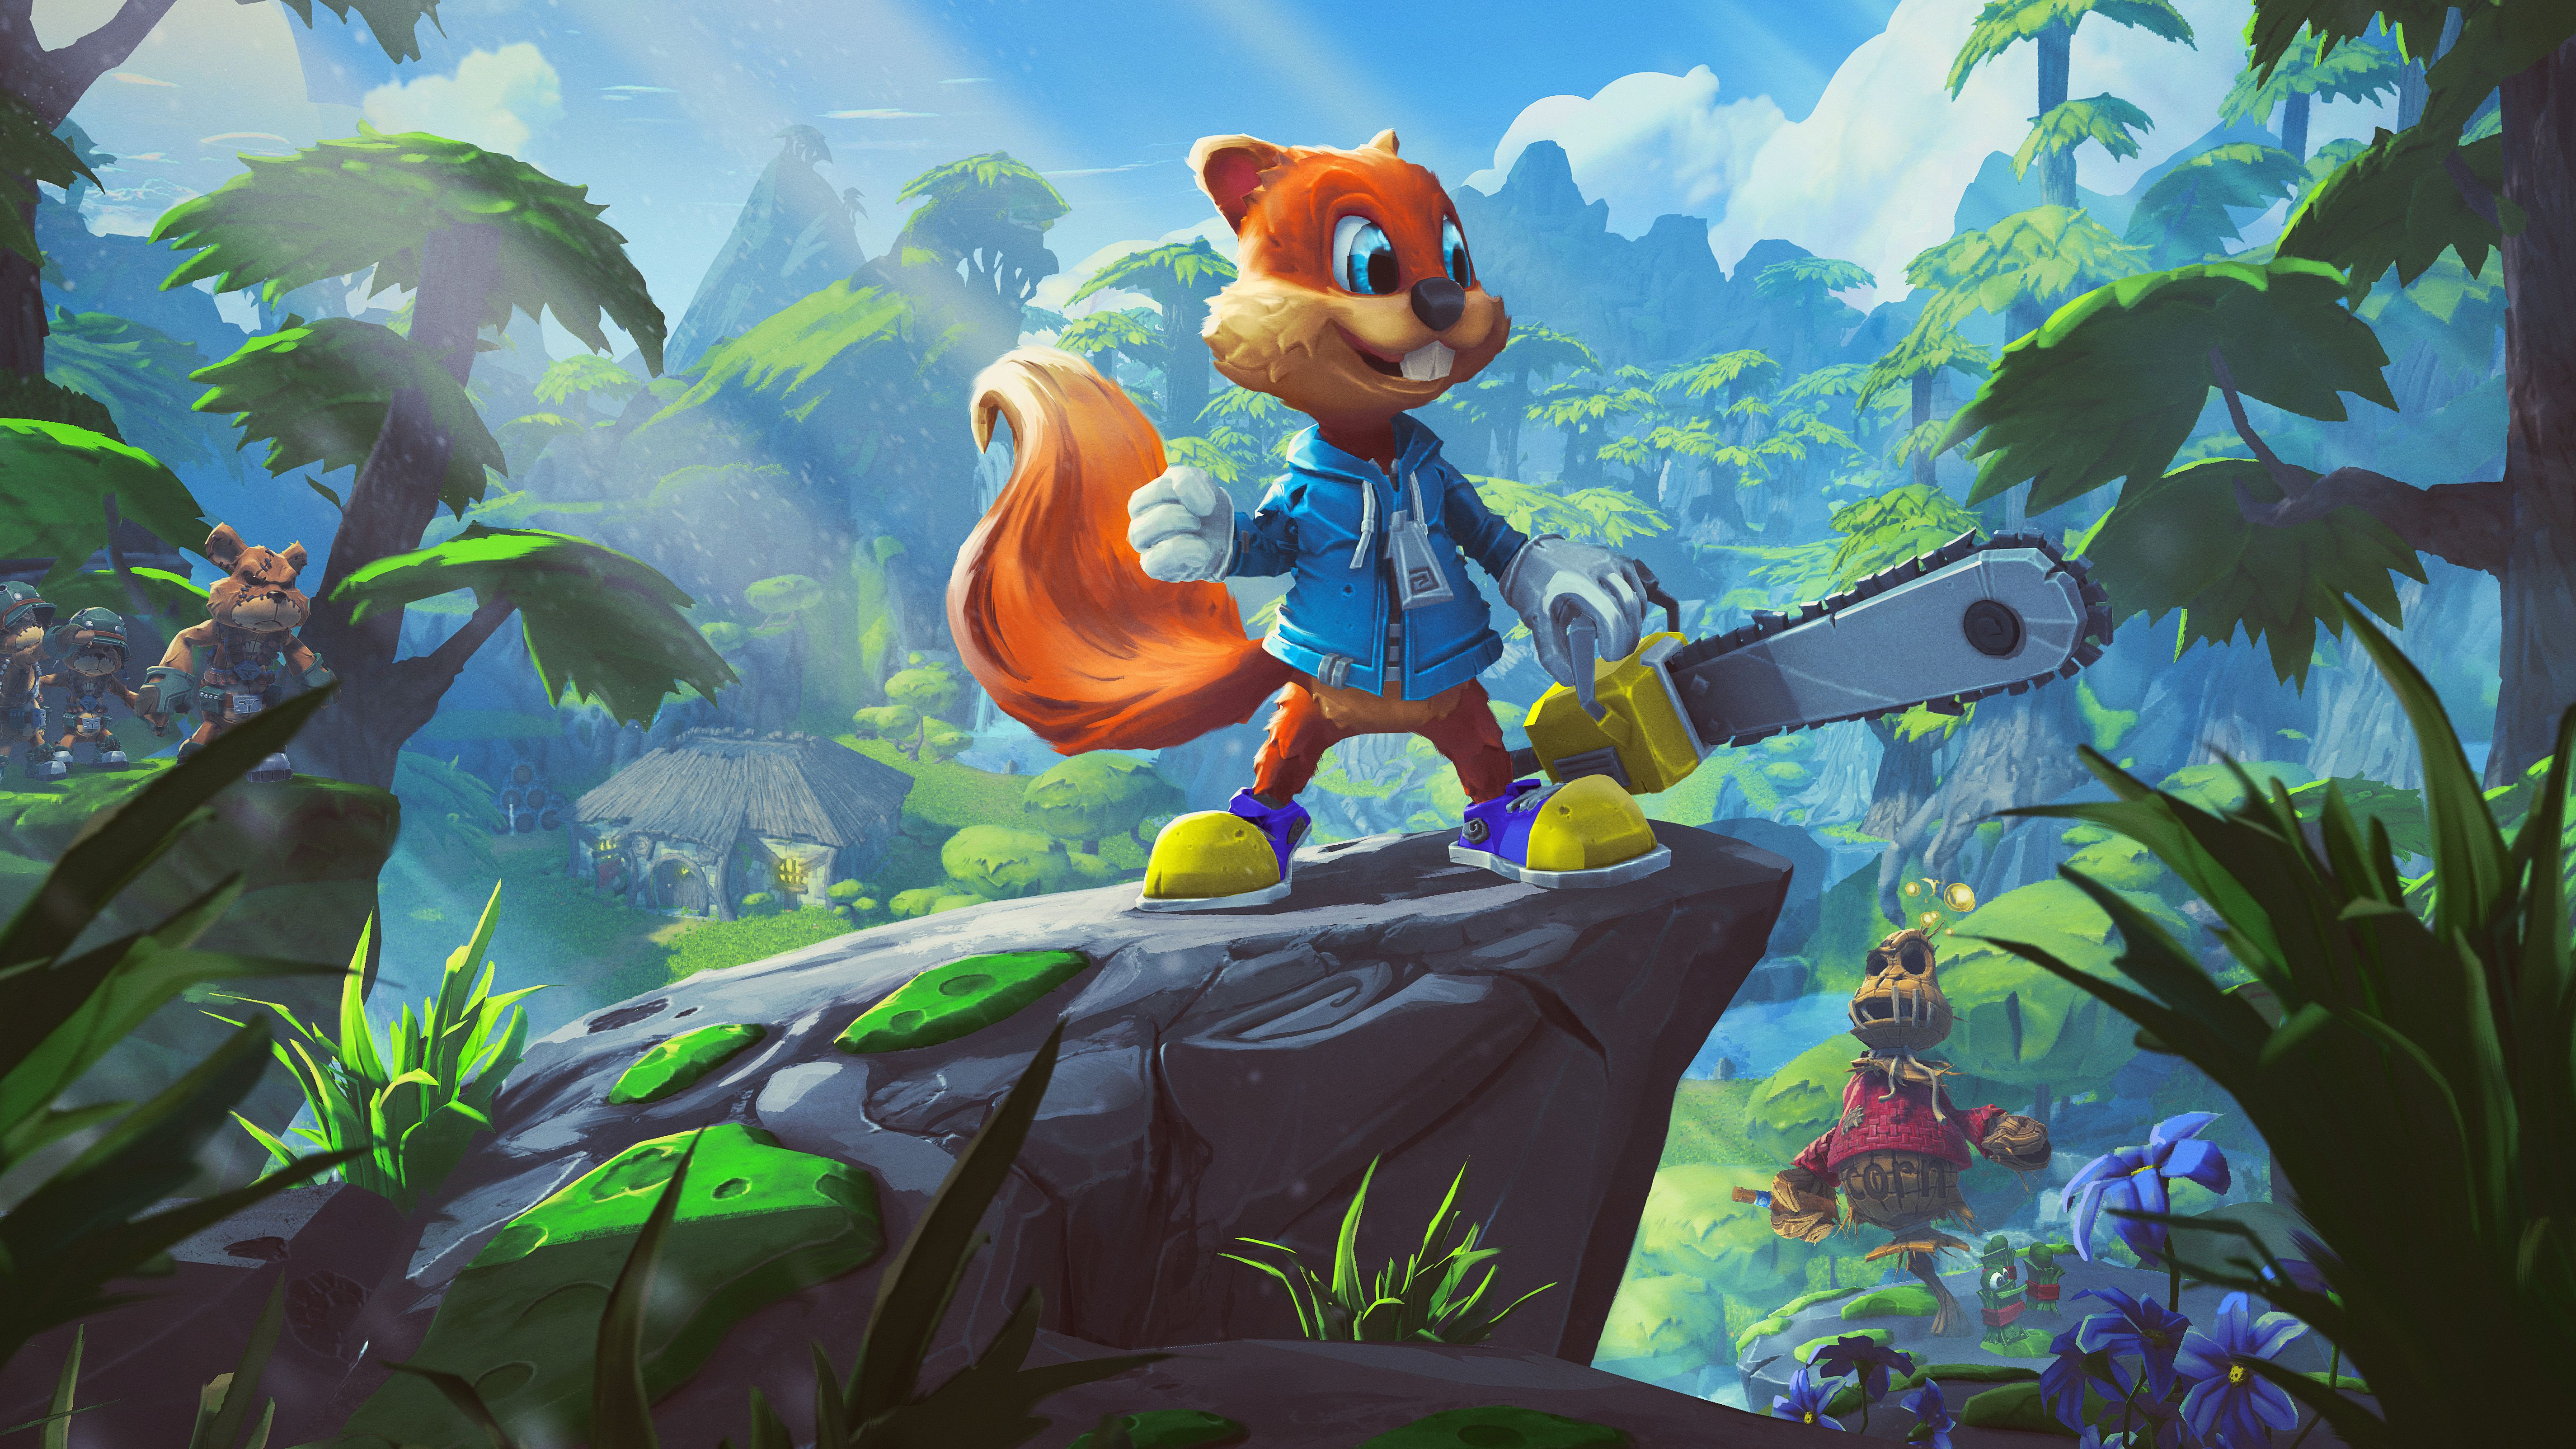 Conker S Big Reunion Join Conker 10 Years After The Events Of